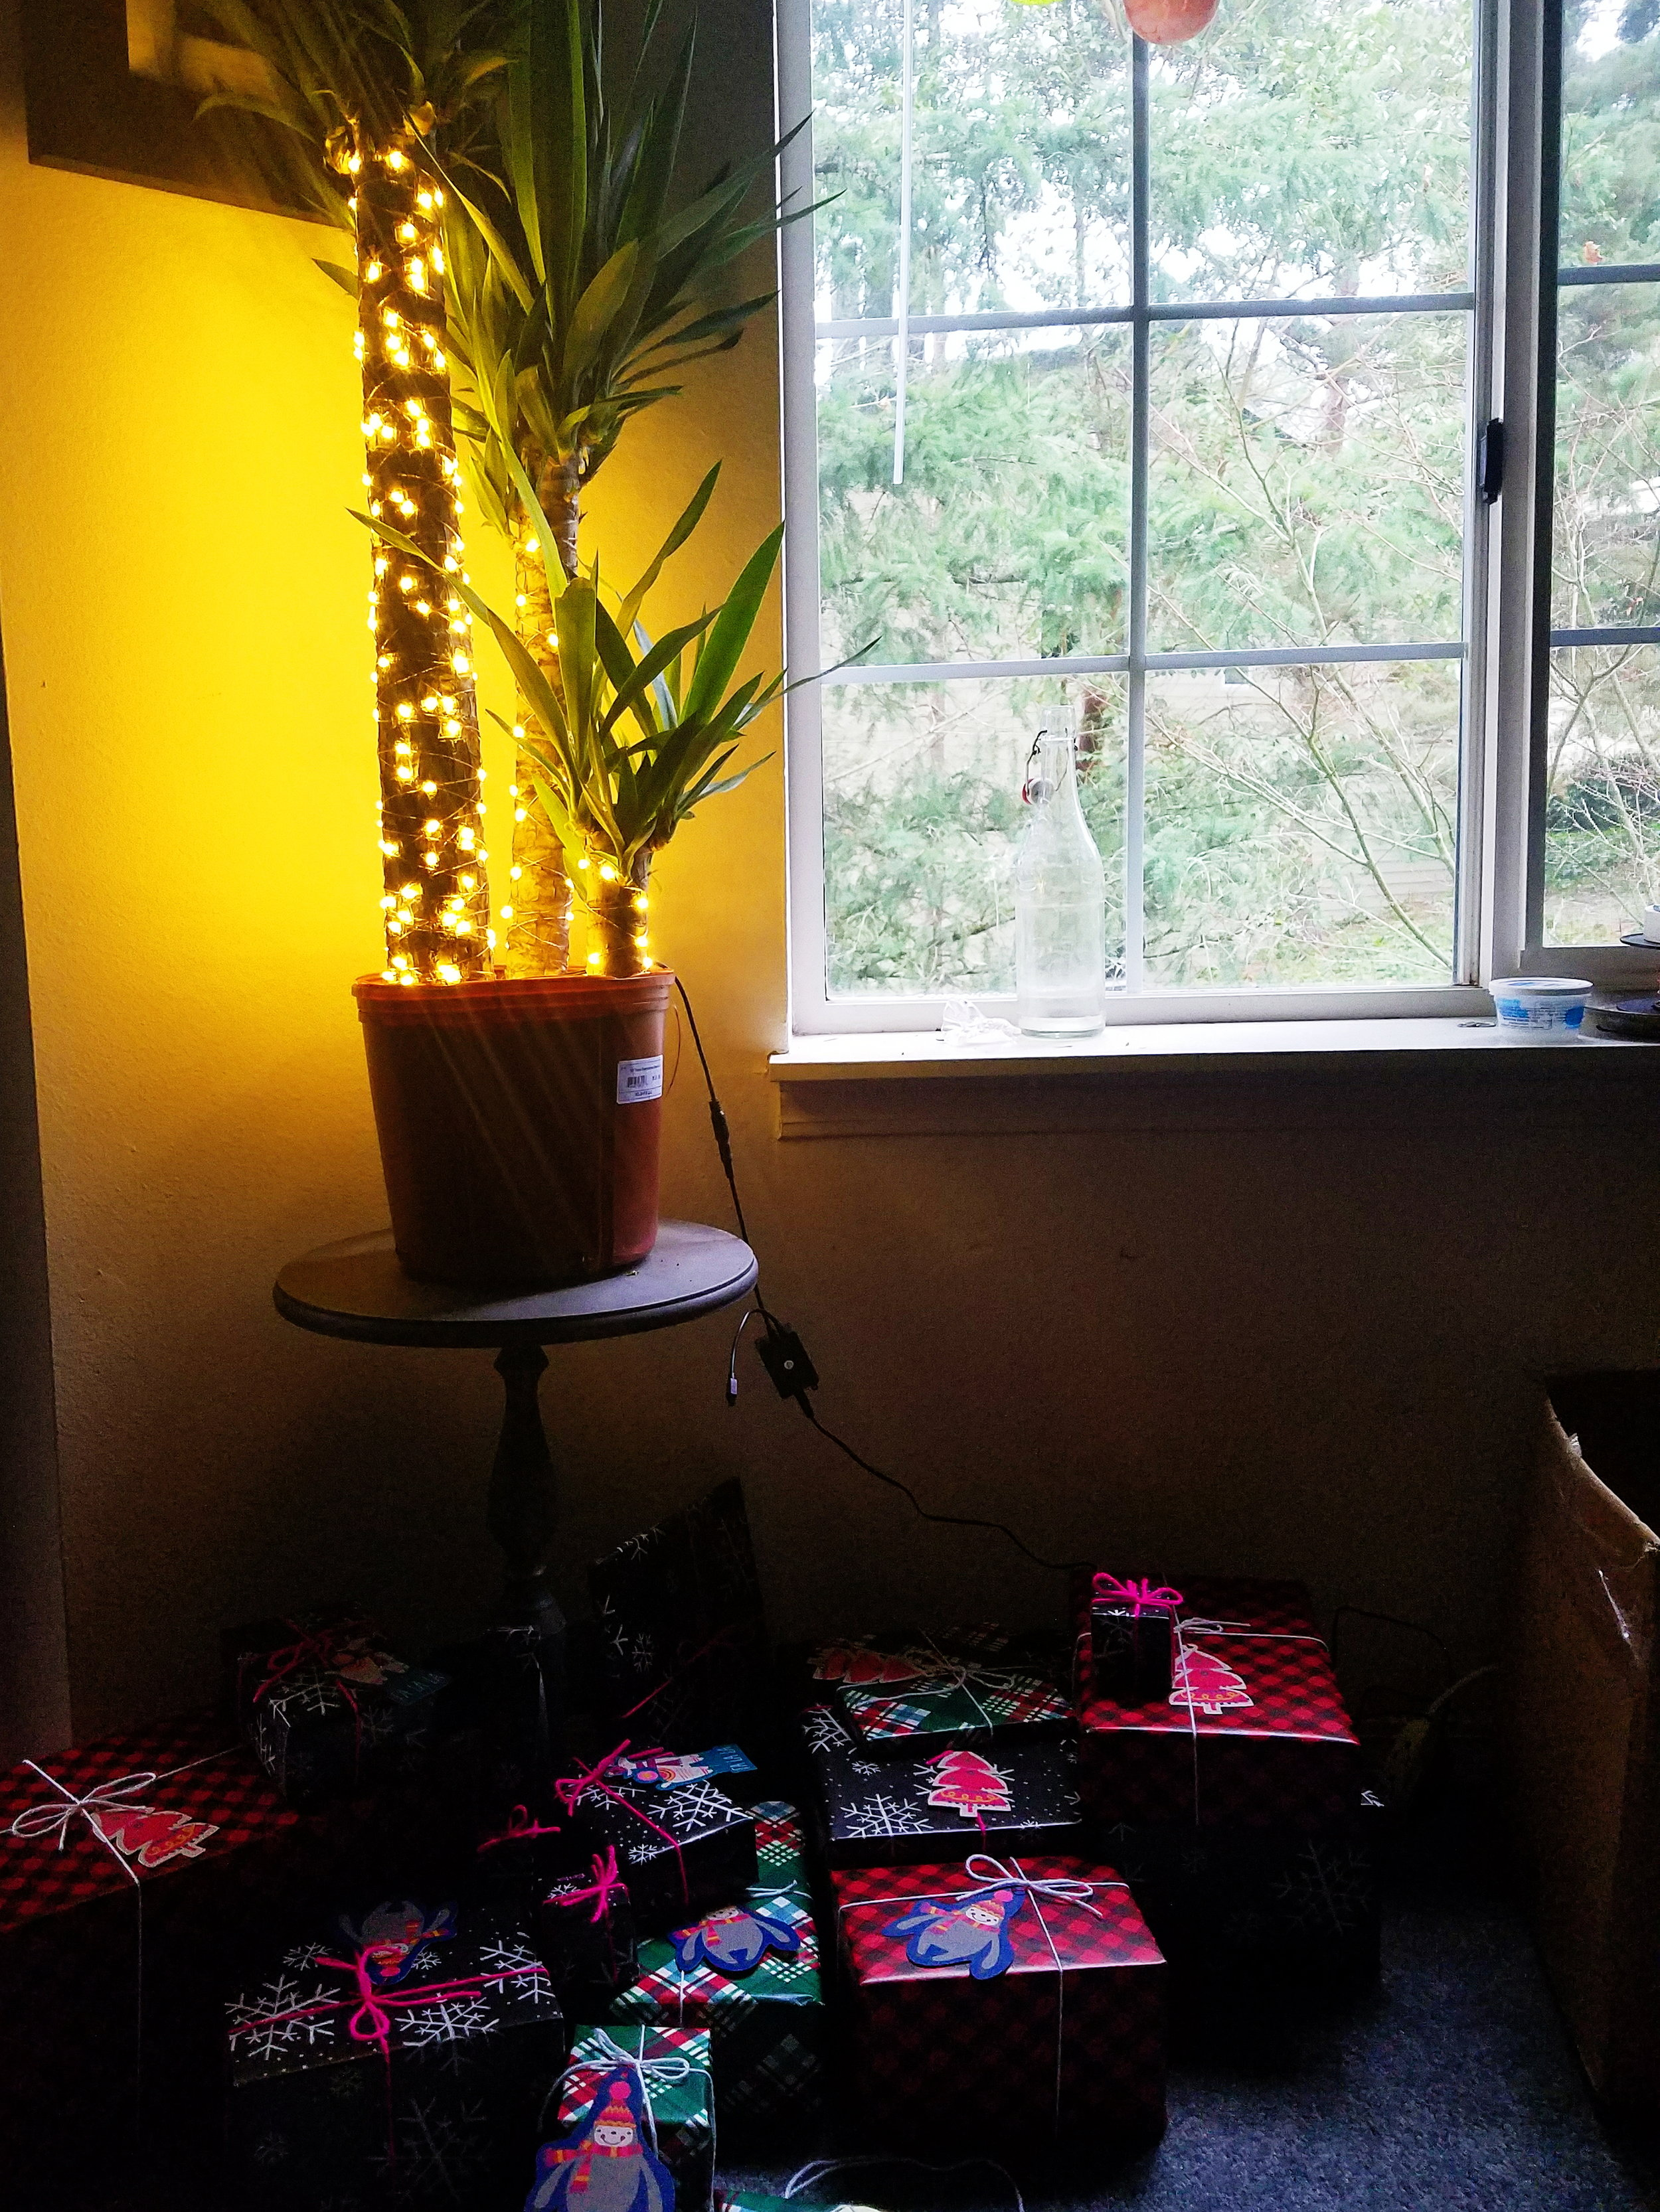 We didn't have time to cut a Christmas tree this year, so instead we decorated a potted plant!